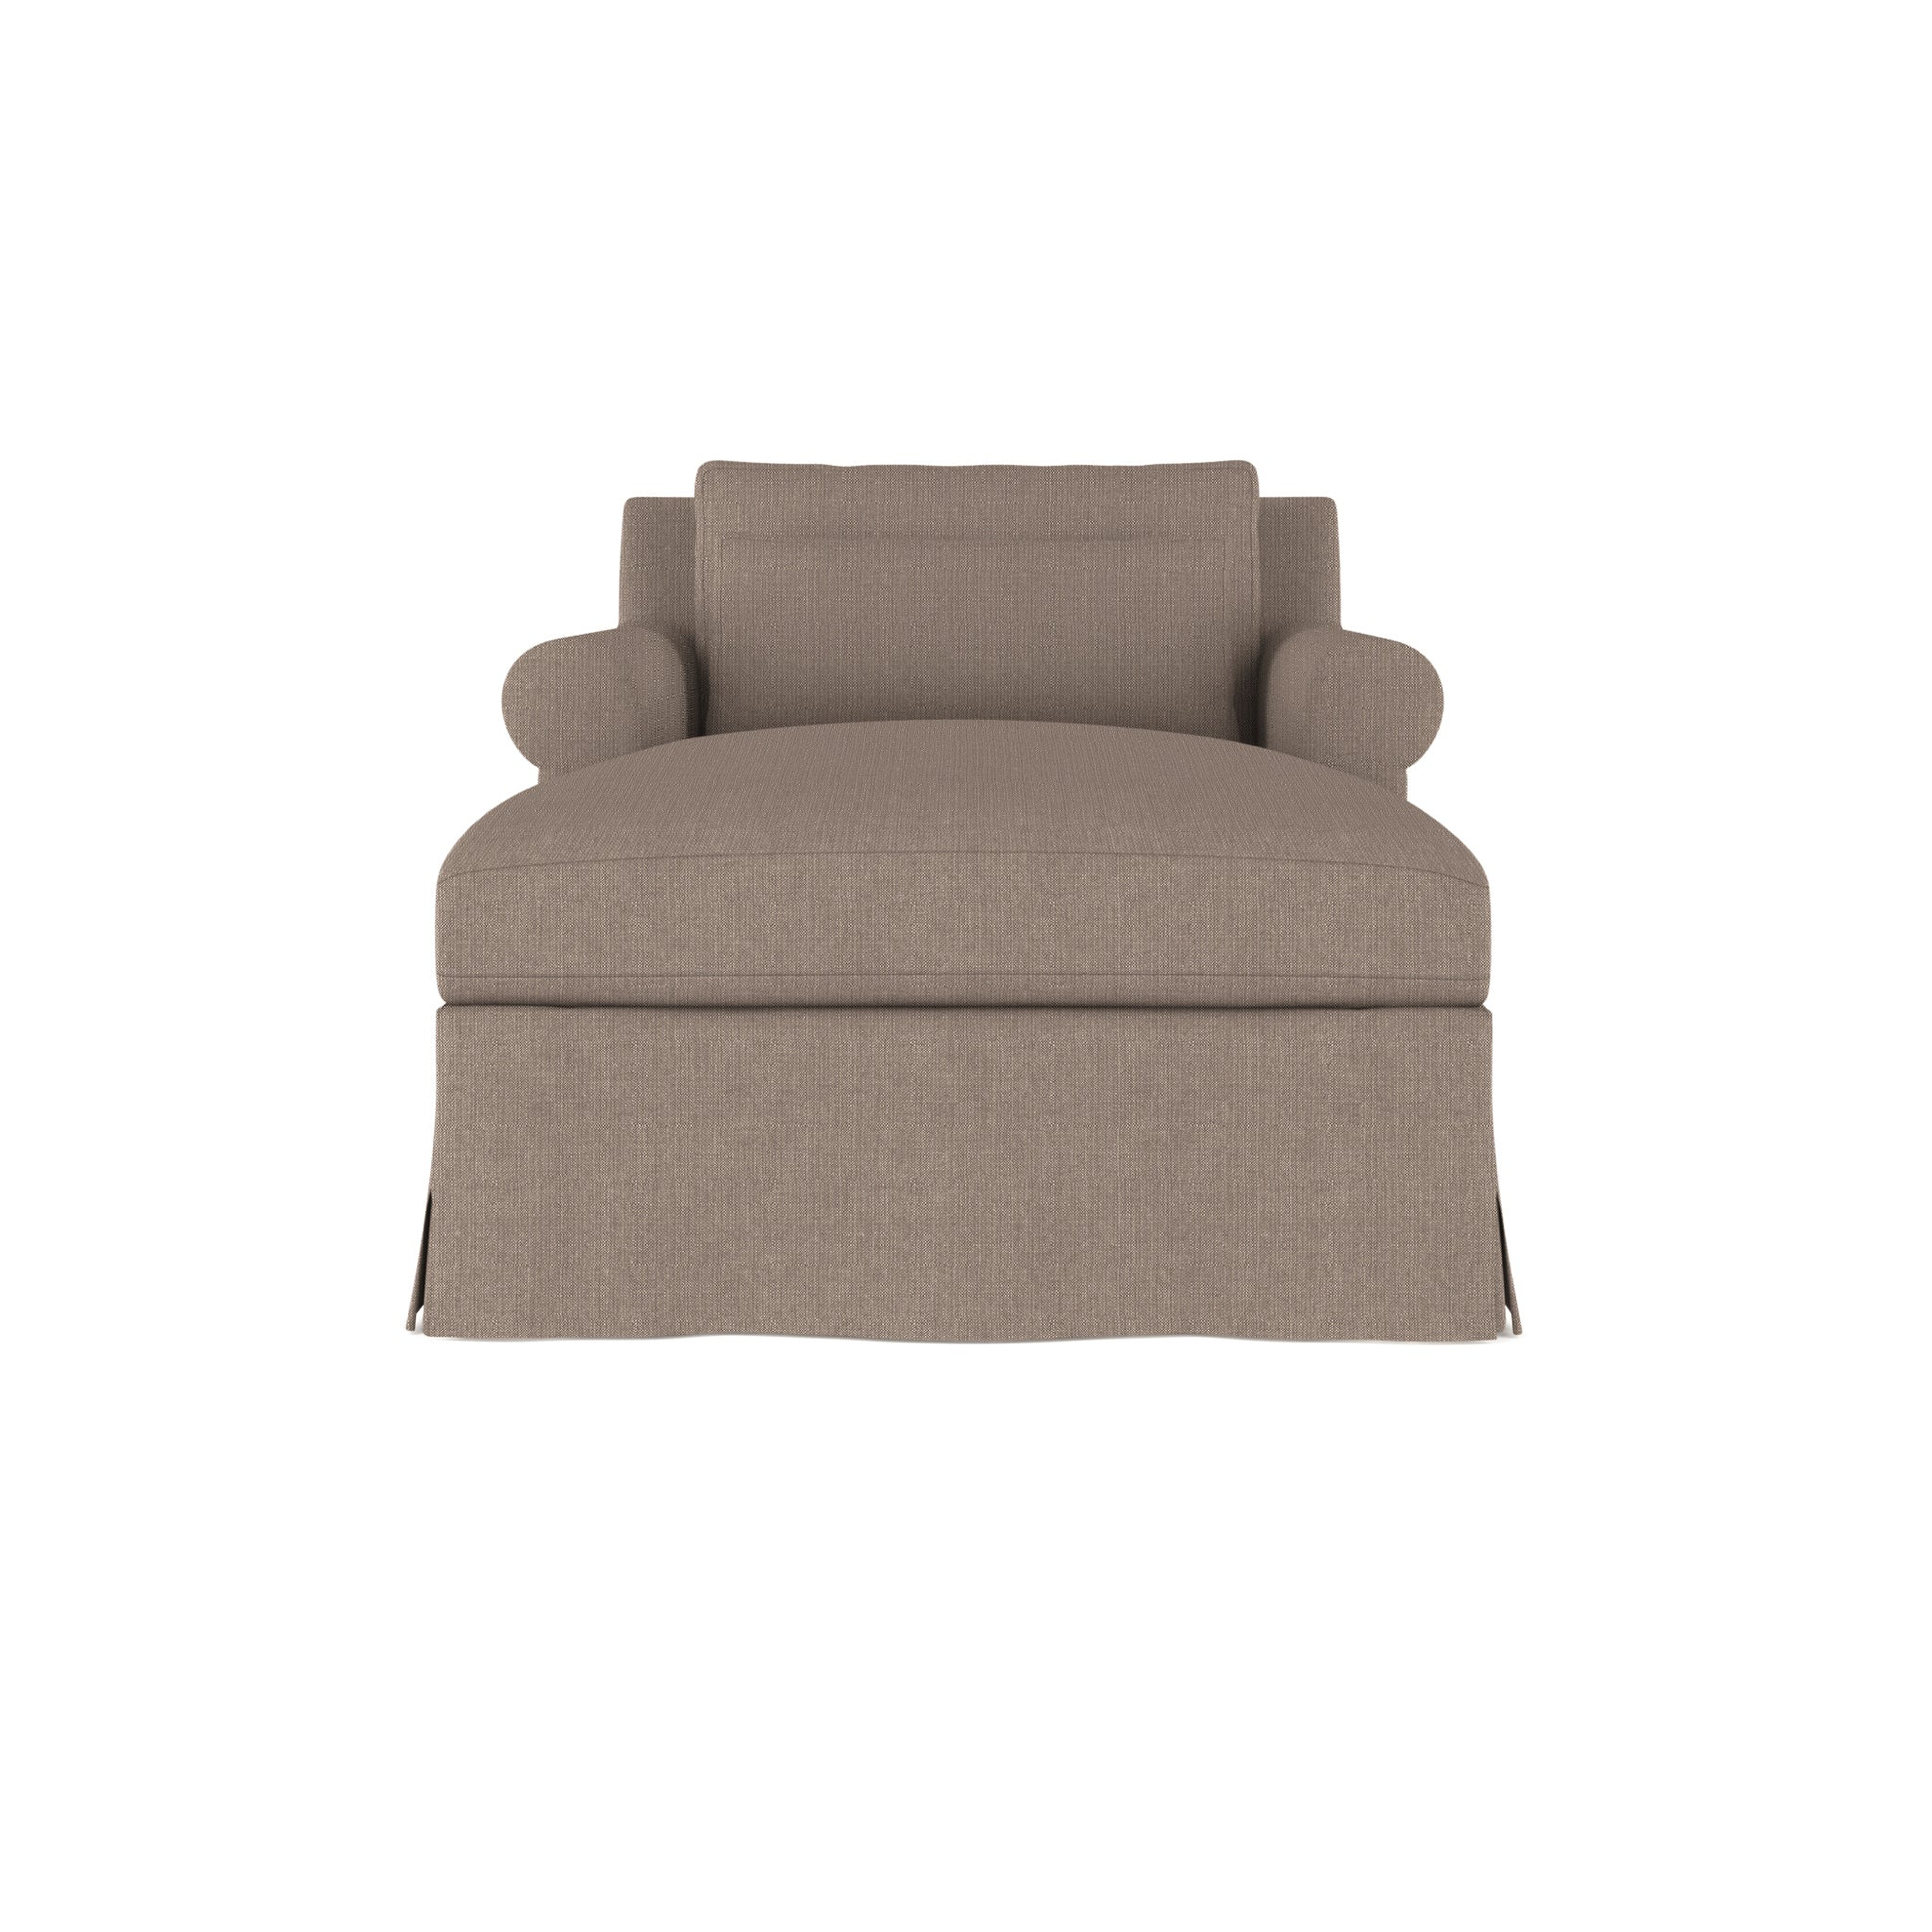 Ludlow Chaise - Pumice Box Weave Linen